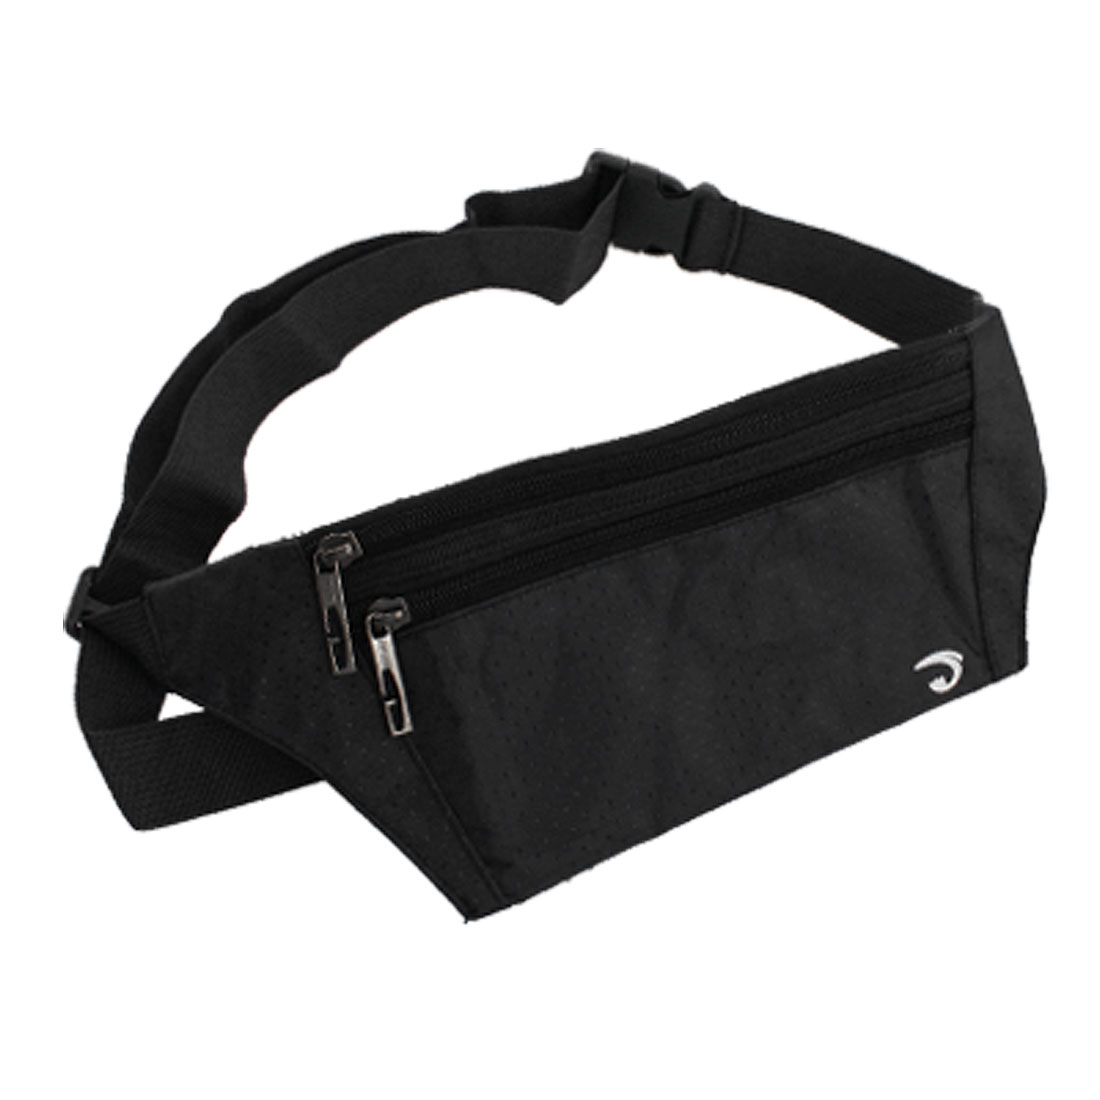 Unique Bargains Man 3 Zippered Pockets Nylon Waist Bag Pouch Black